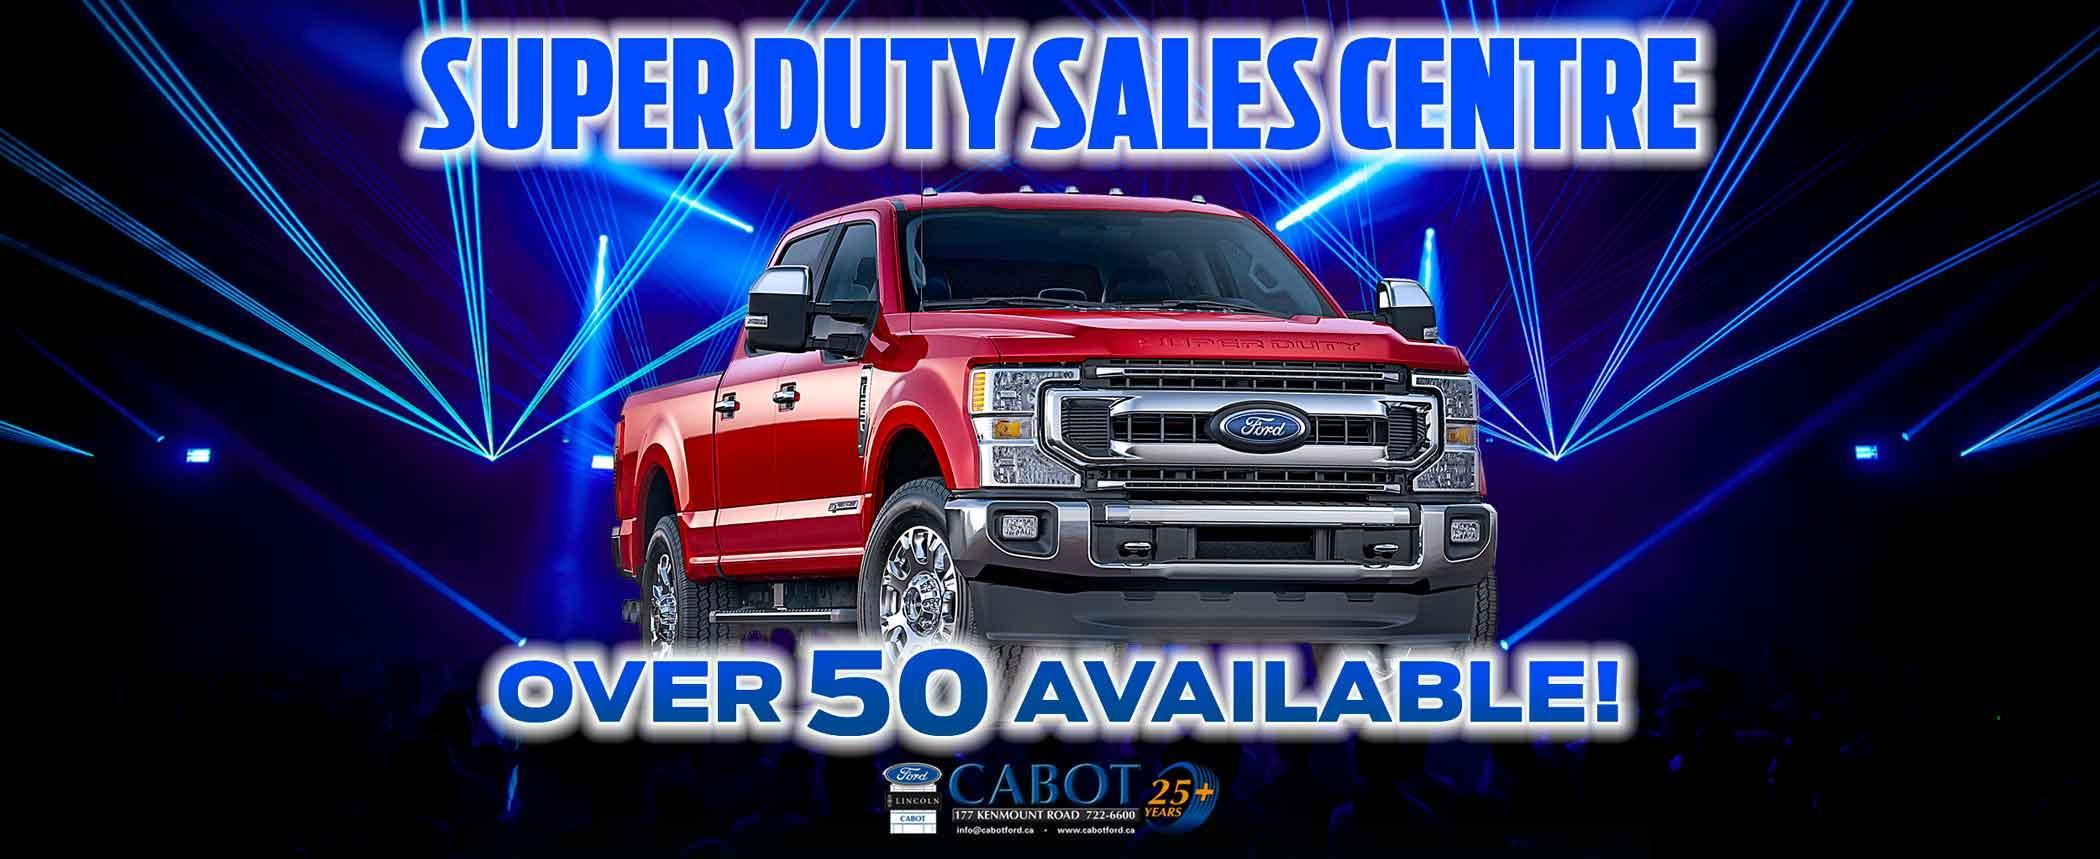 Cabot is ATLANTIC CANADA'S SUPER DUTY SALES CENTRE! 177 Kenmount Road • 722-6600